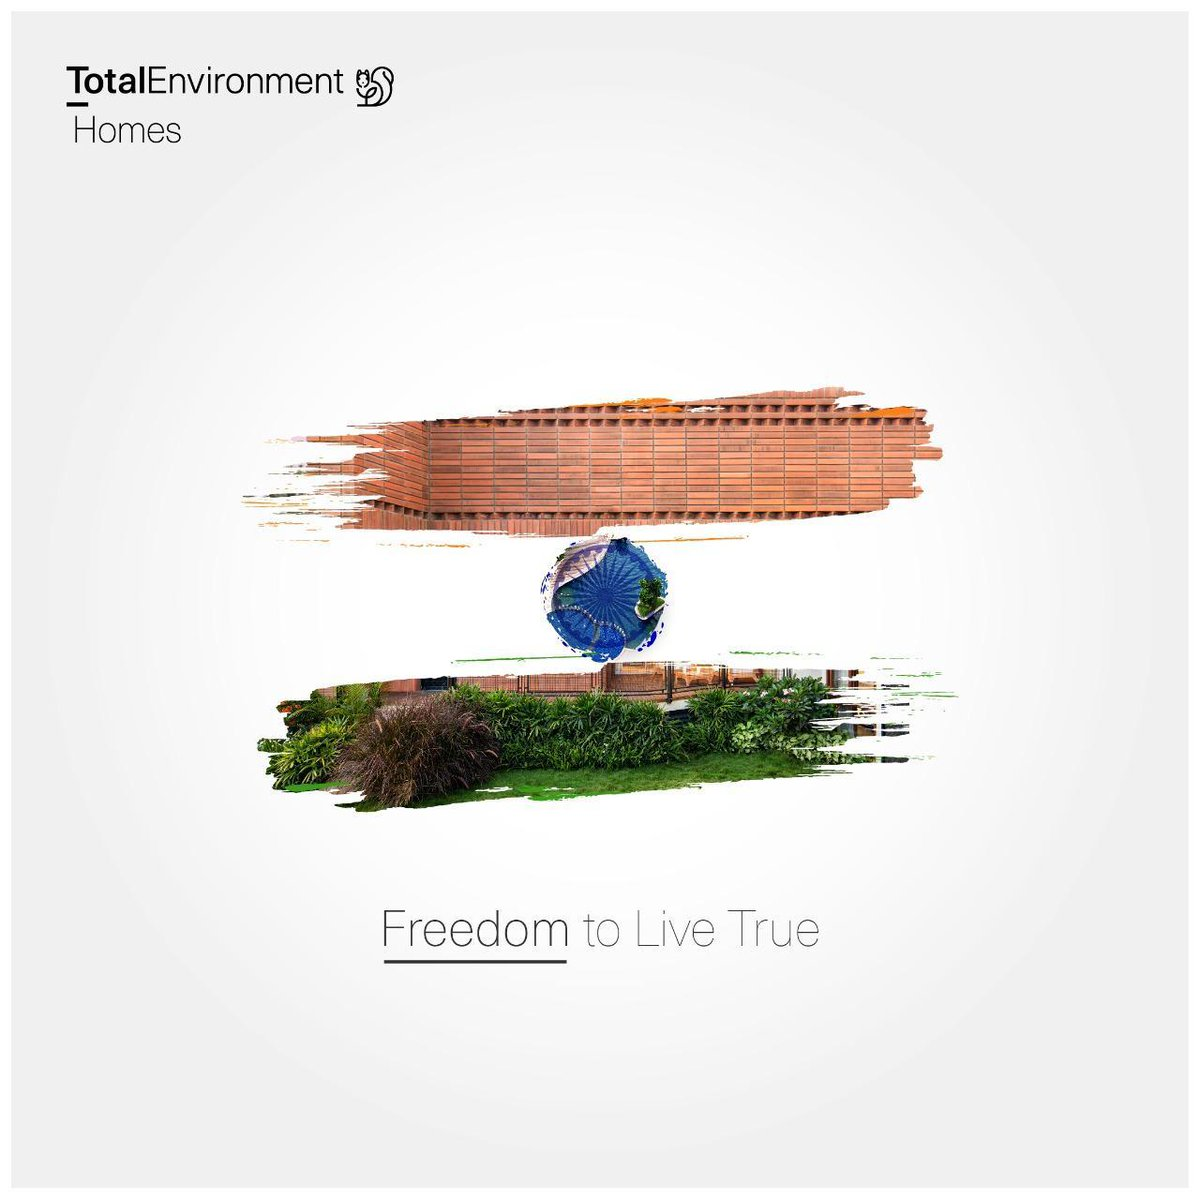 Happy Independence Day! Celebrating 74 years of freedom and progress.  #independenceday #jaihind #india #freedom #ecofriendlyhome #totalenvironment https://t.co/lBc3Mucbof